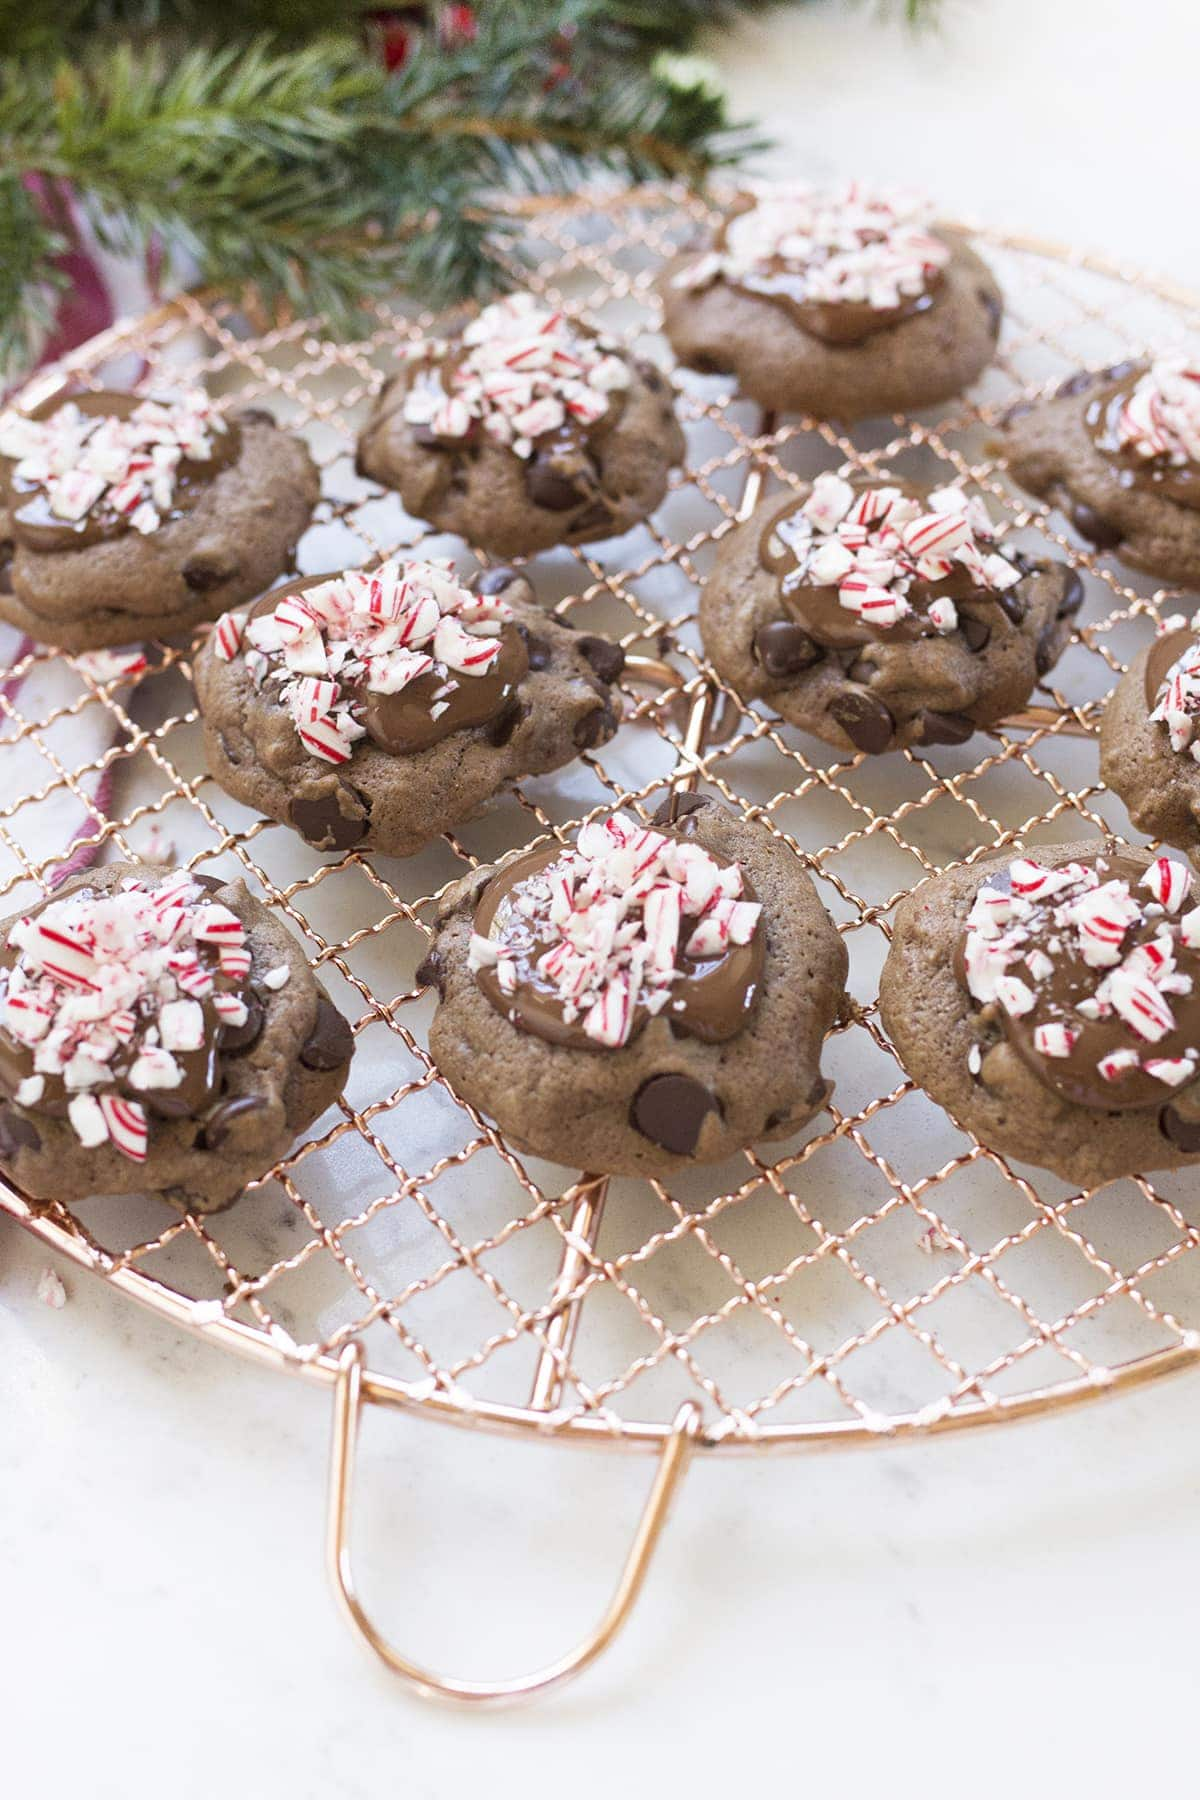 Make It Yours™ Double Chocolate Peppermint Cookies